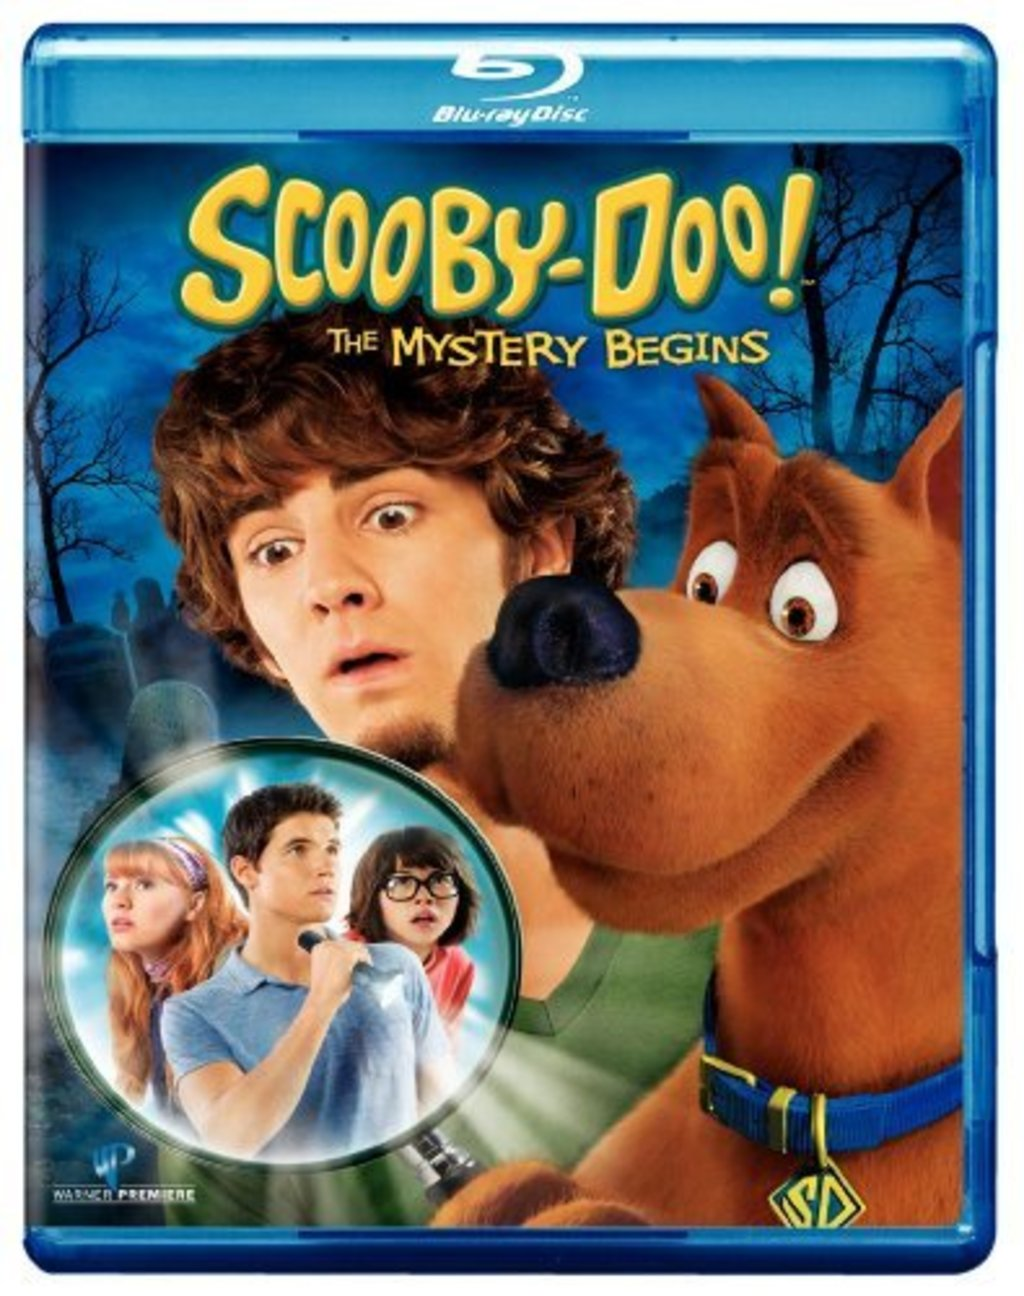 Watch Scooby Doo The Mystery Begins On Netflix Today